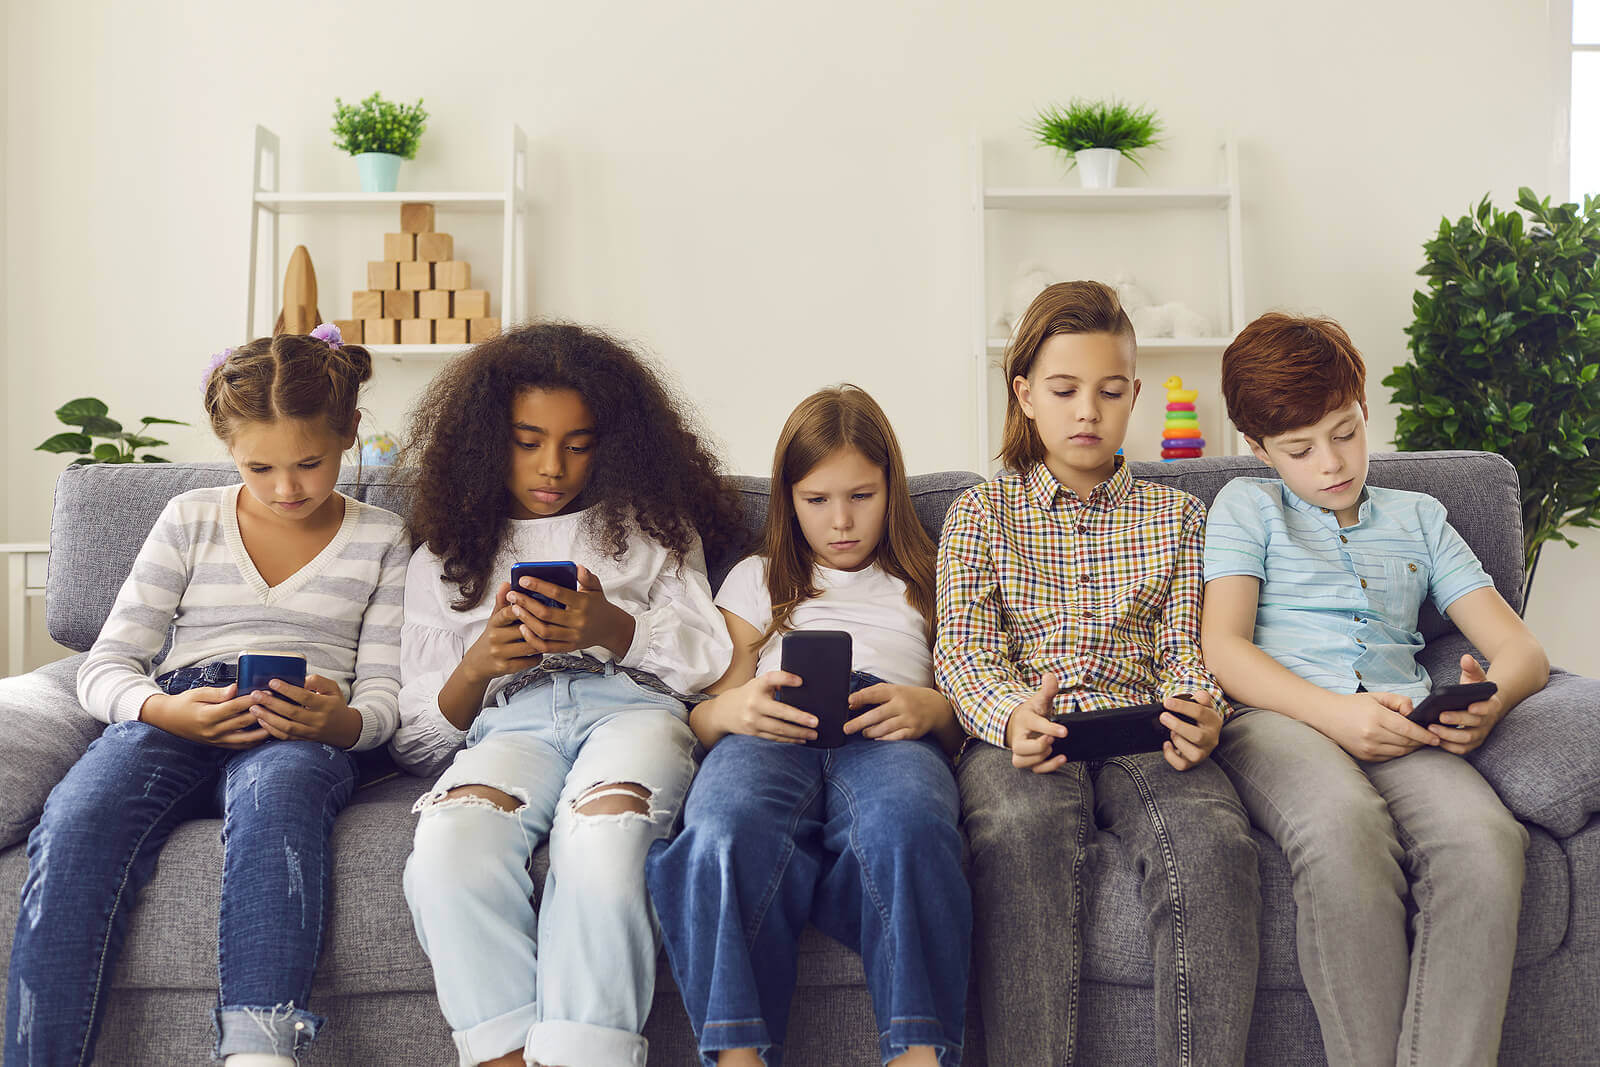 Five preteens sitting on the couch looking at their phones.